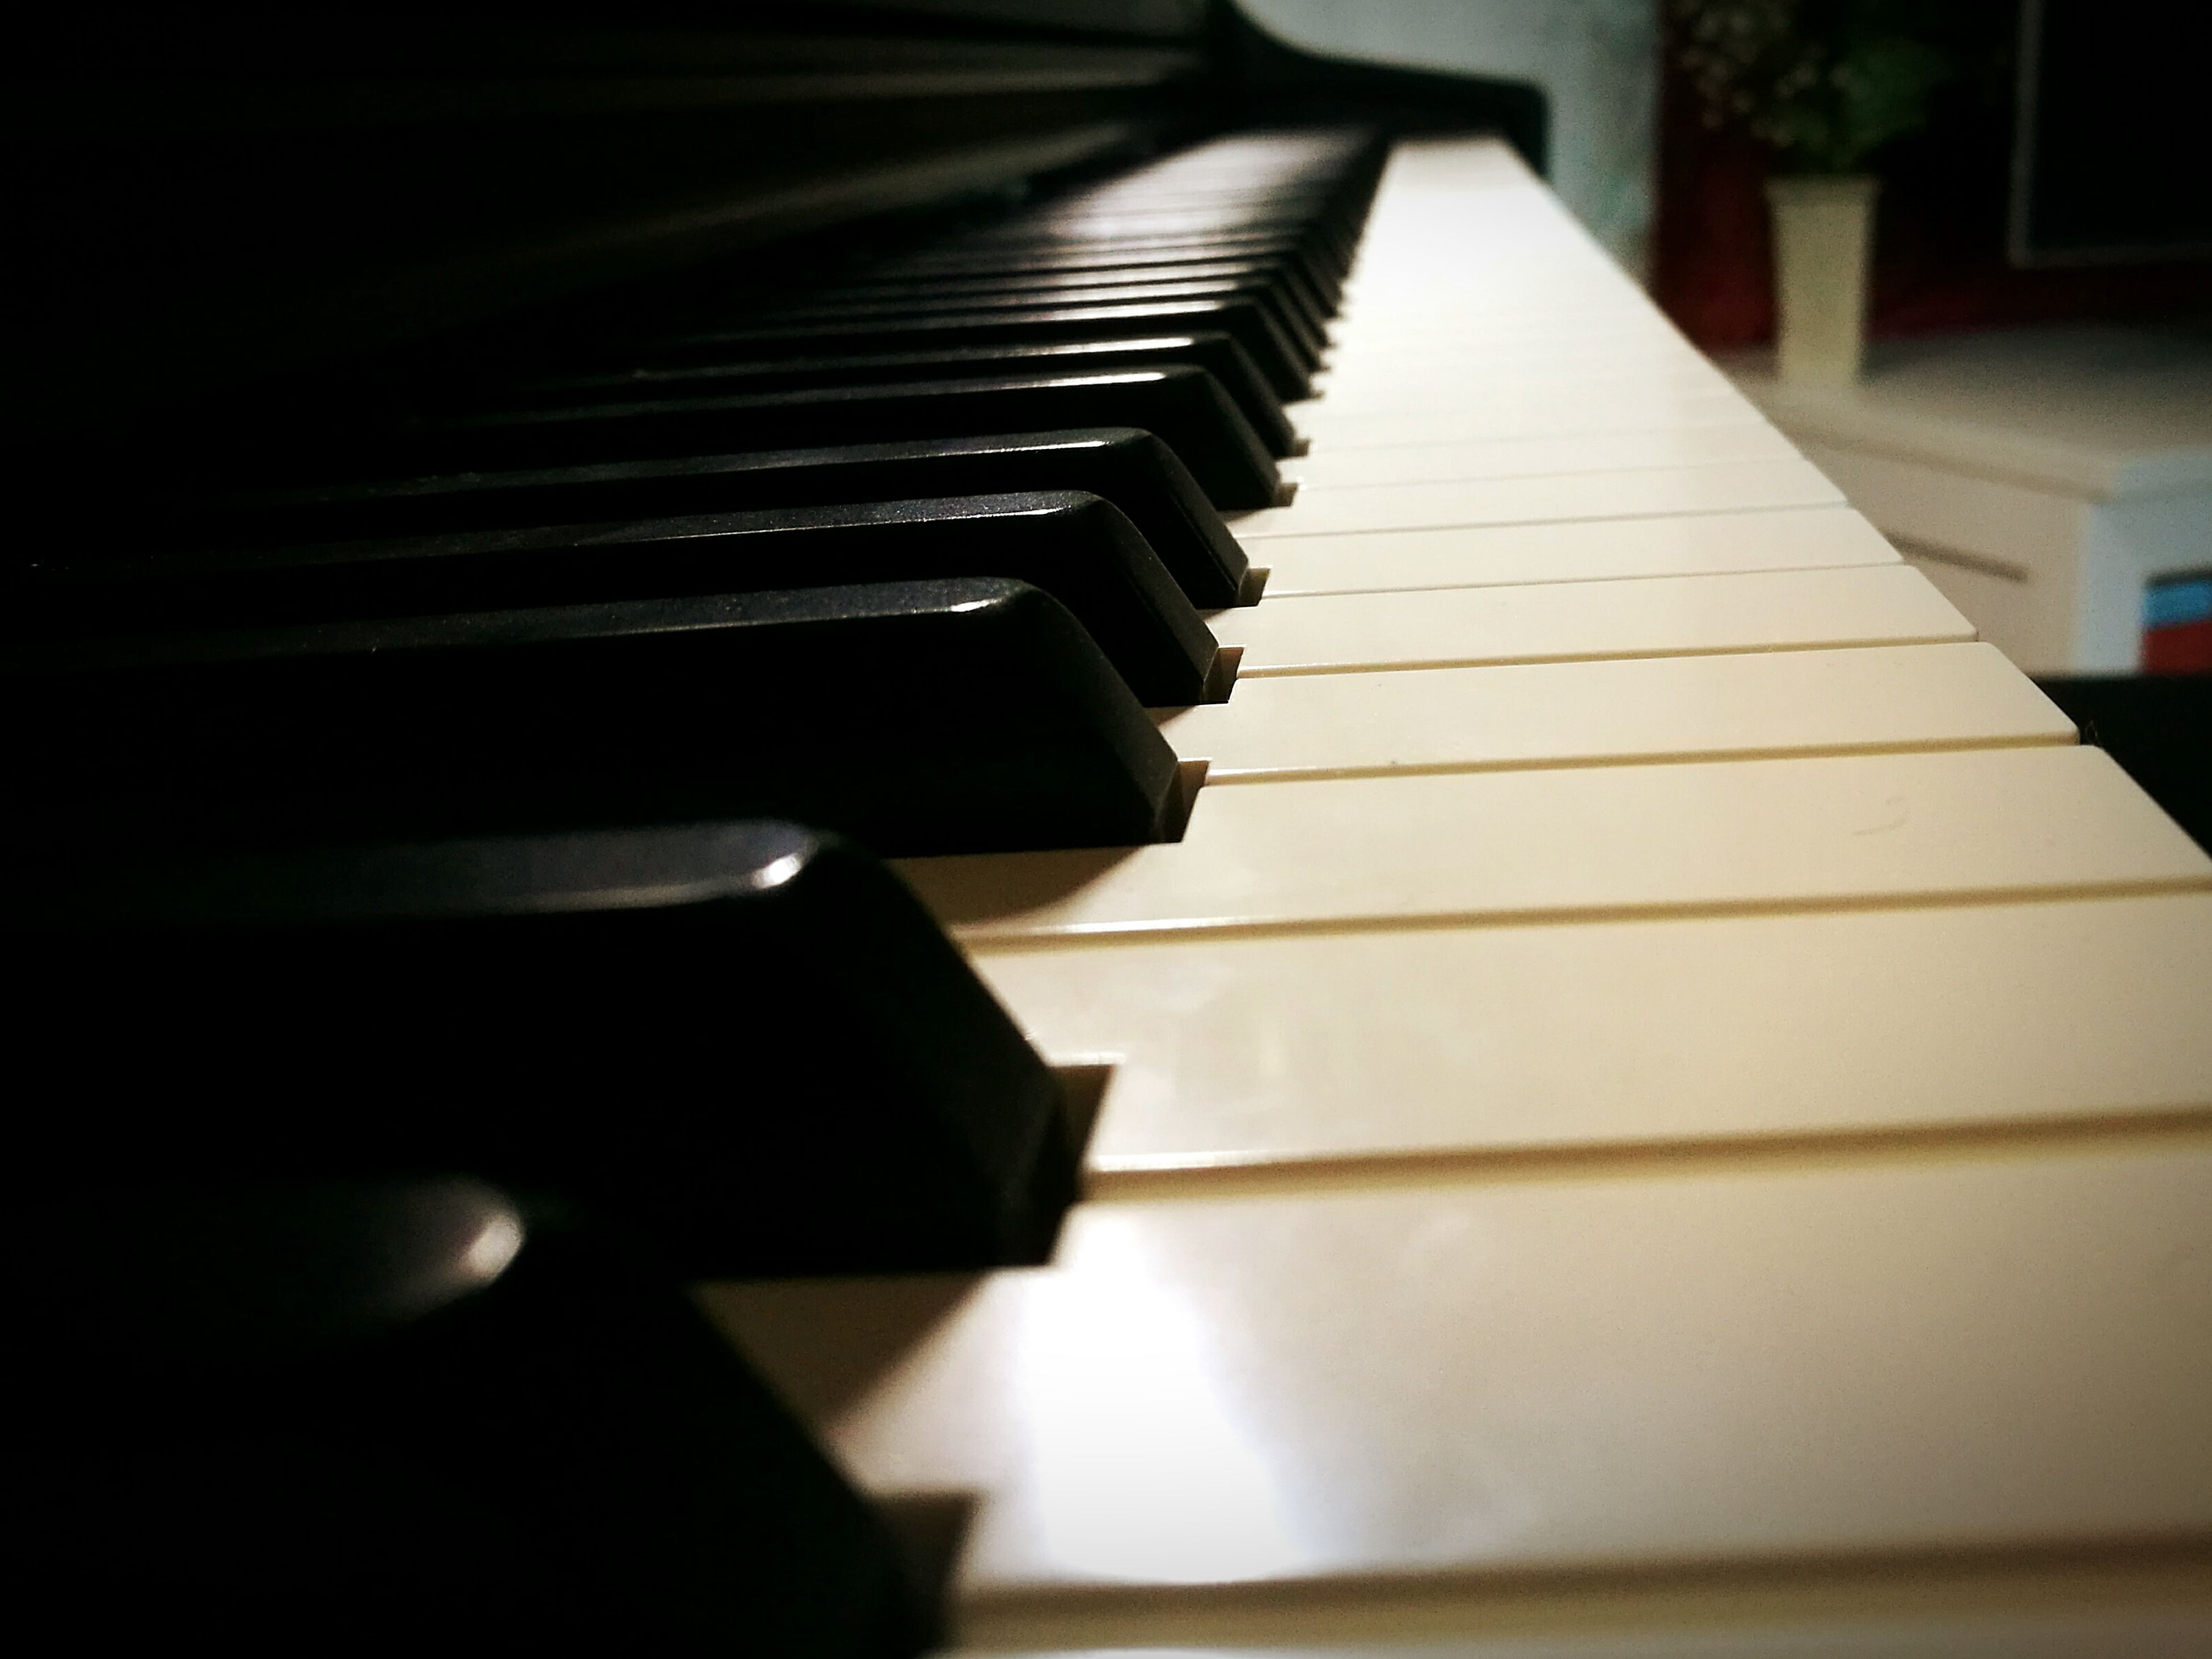 piano key, piano, musical instrument, music, arts culture and entertainment, musical equipment, close-up, no people, indoors, day